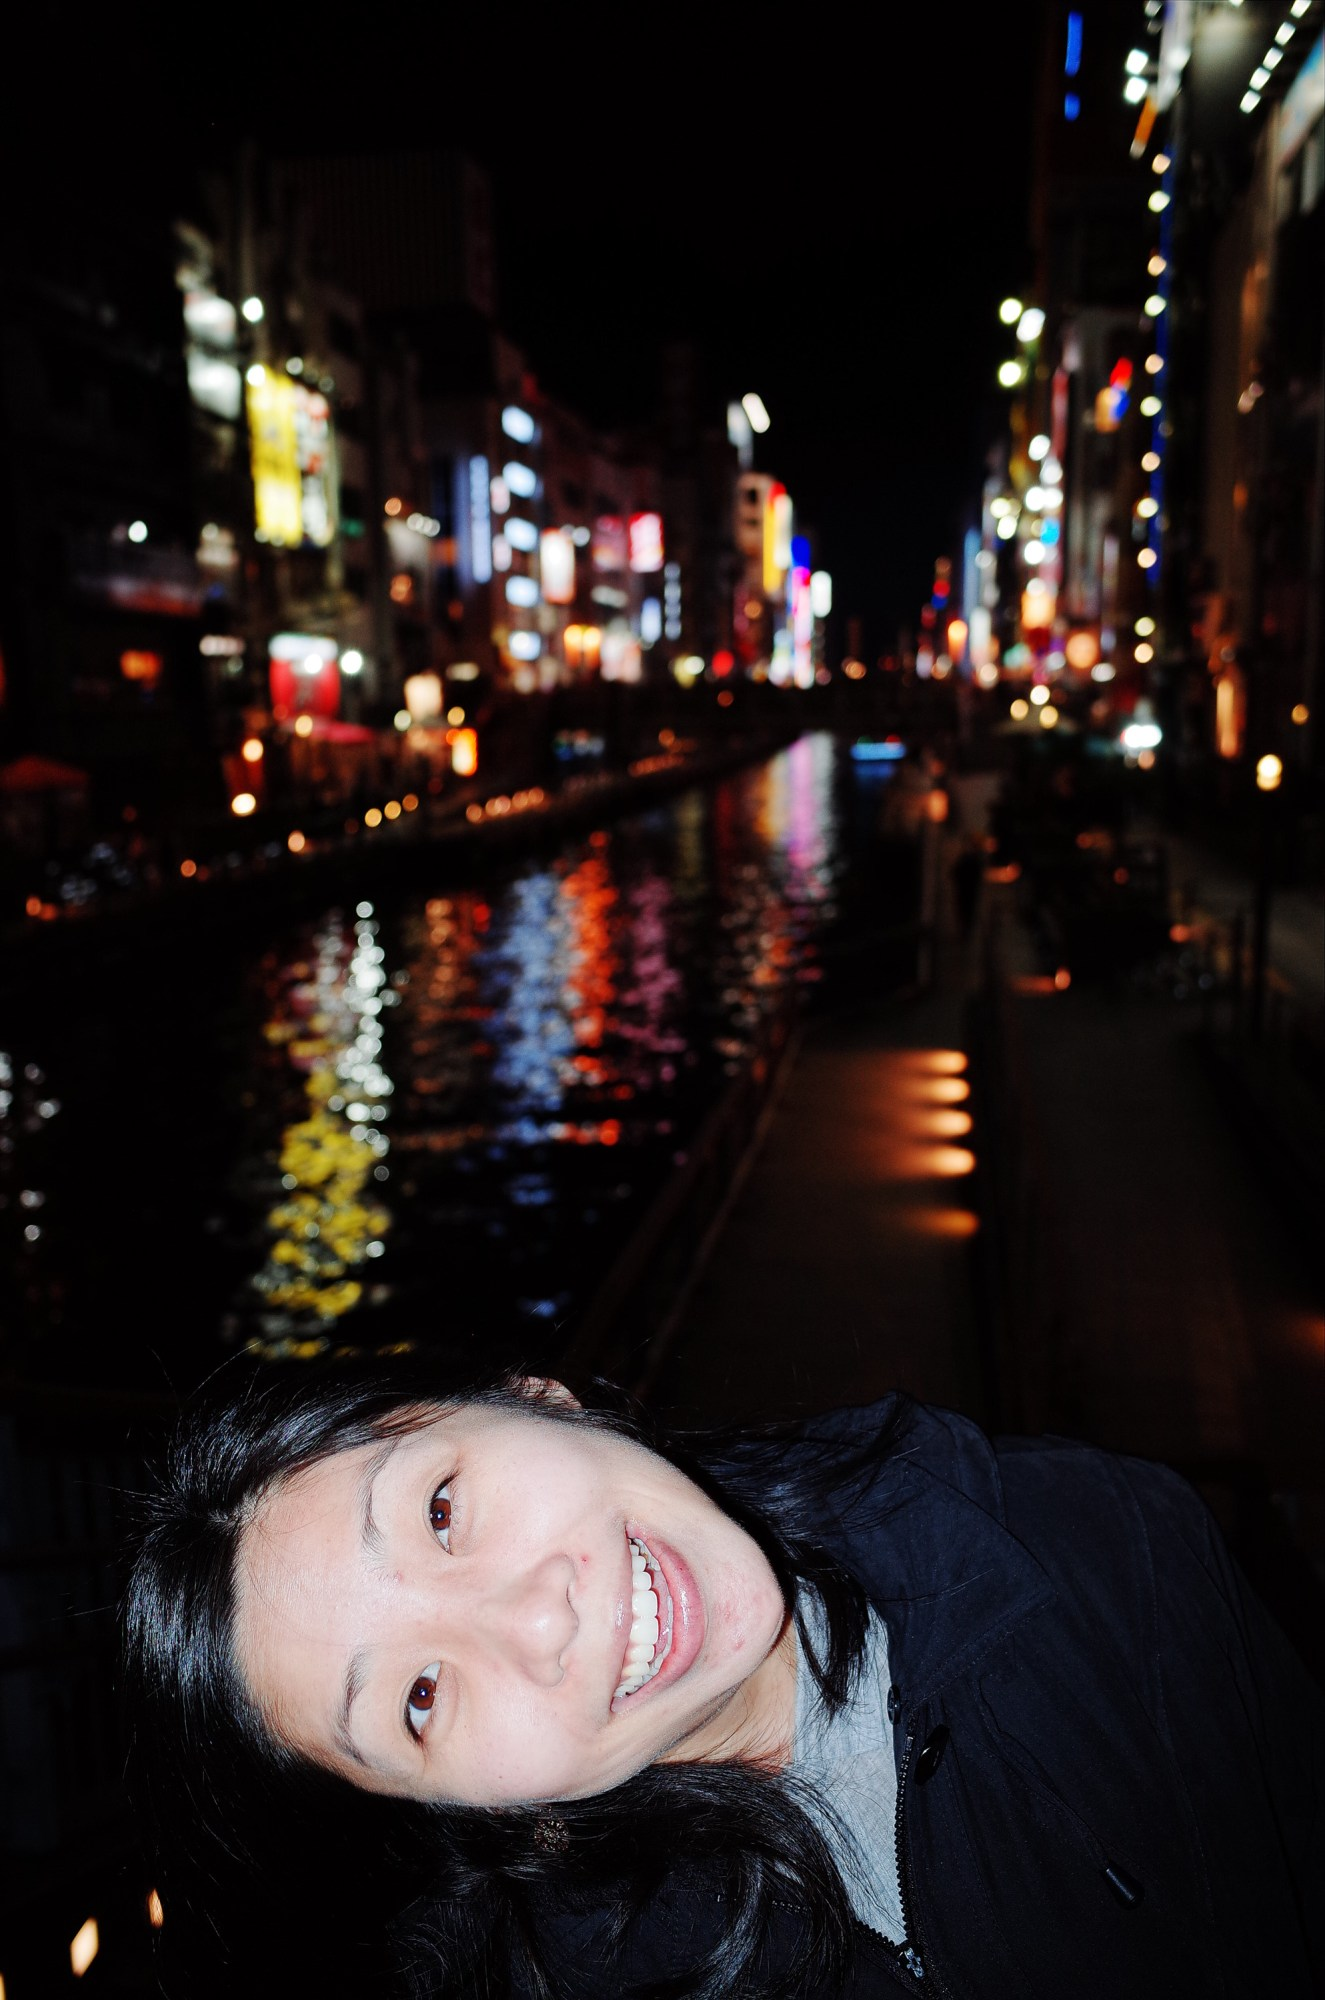 Cindy tilting her head, and Osaka river at night. 2018